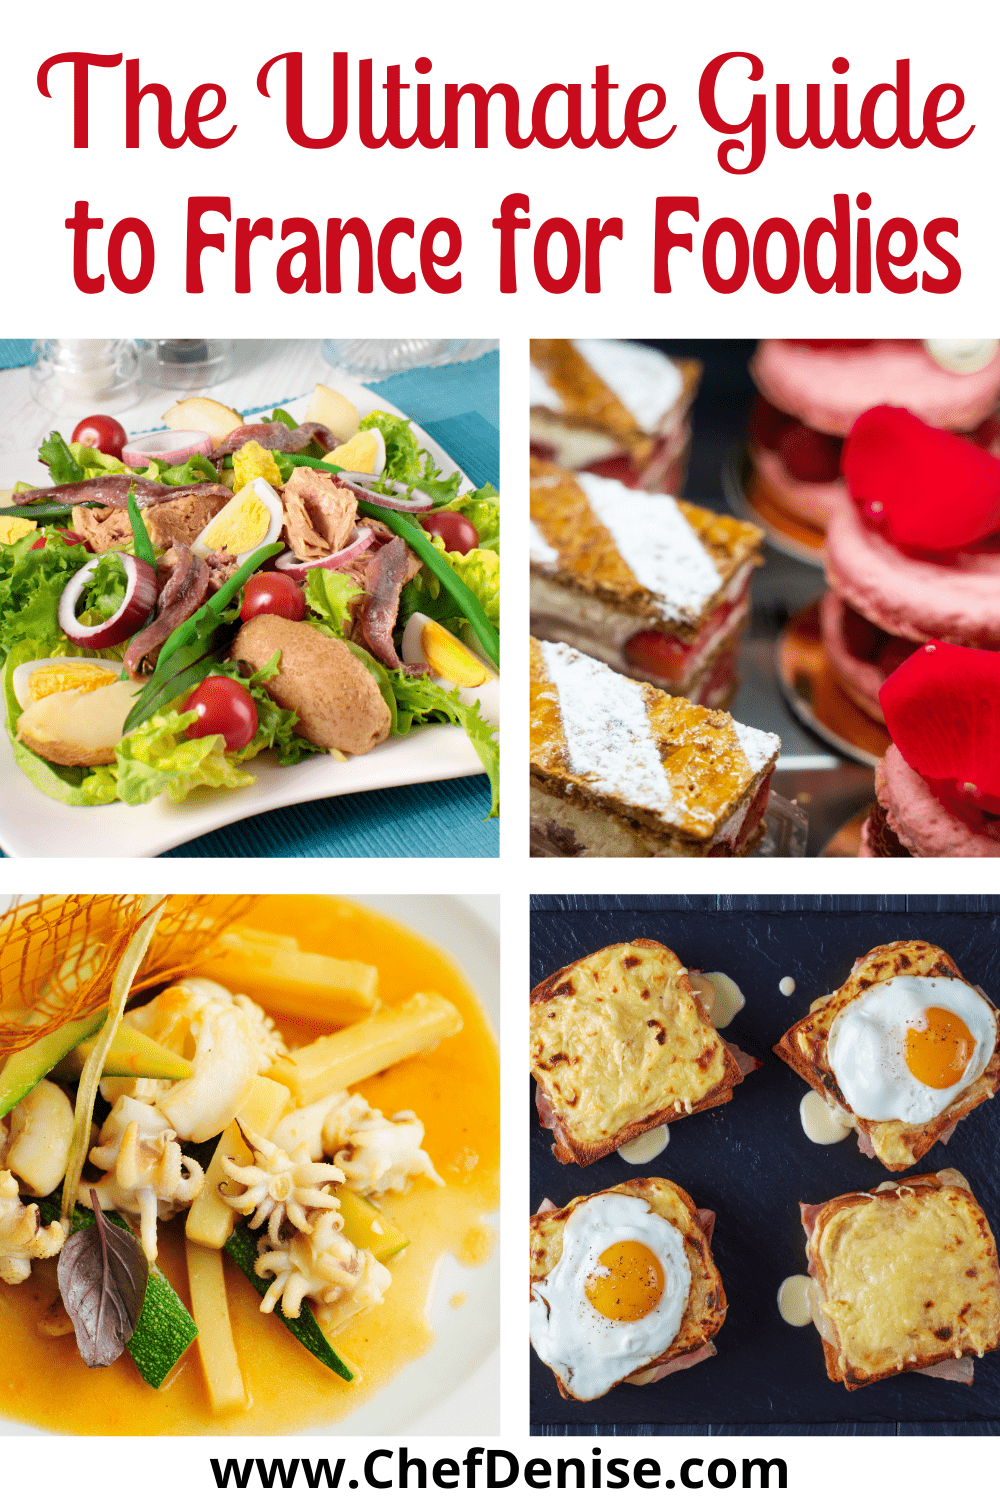 Pin for foodie guide to France.